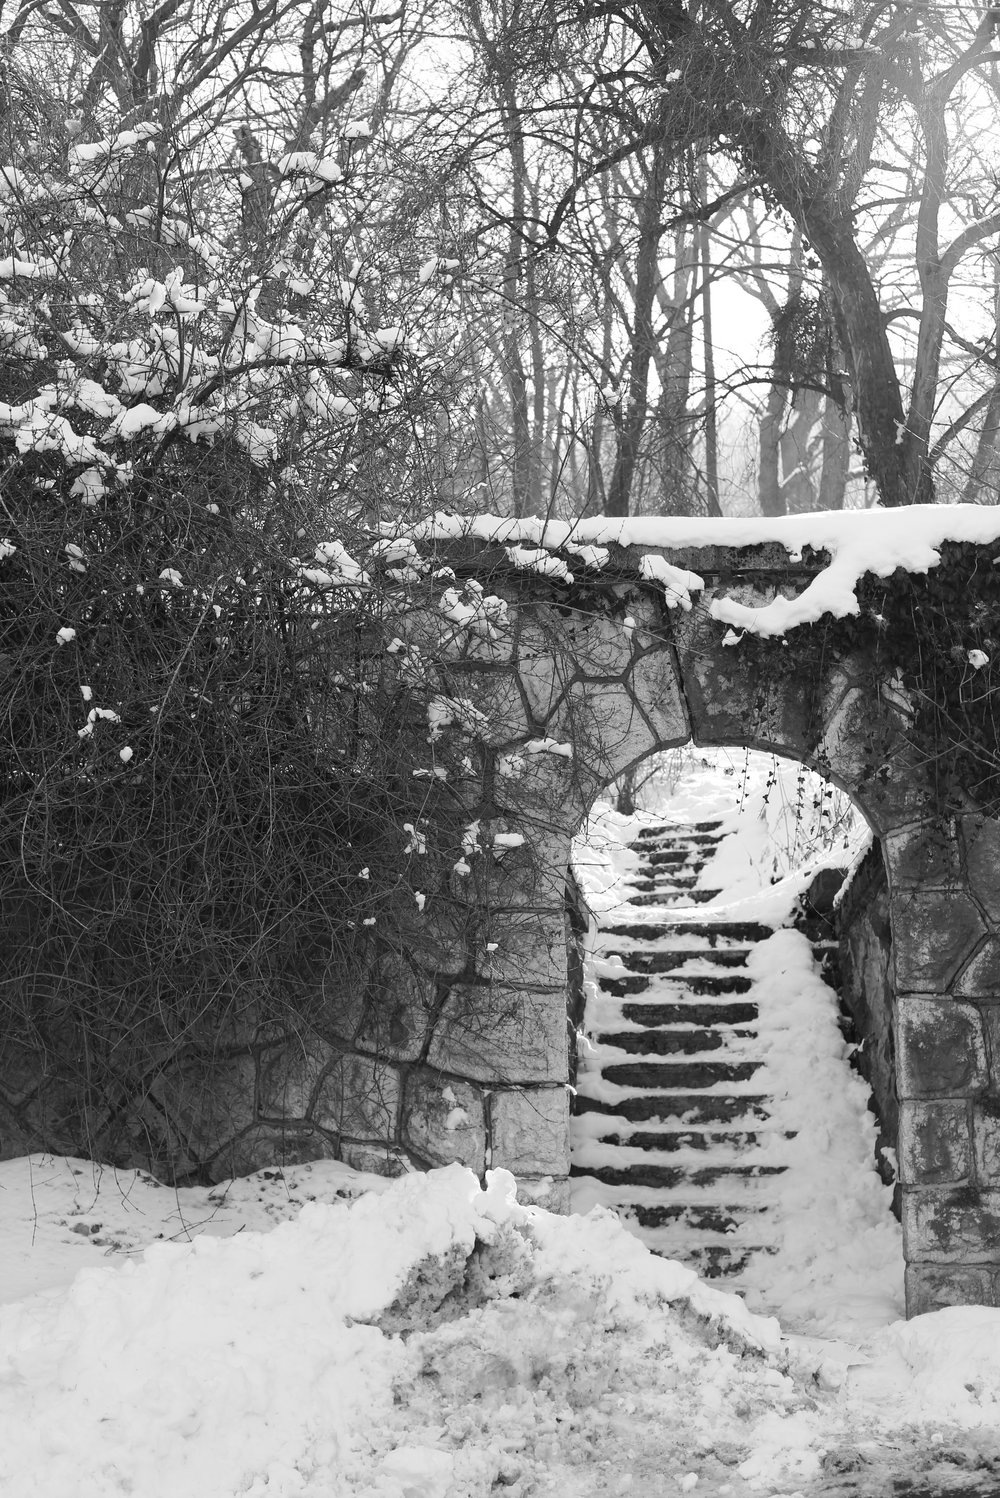 Stone stairs under an arch in the snow.